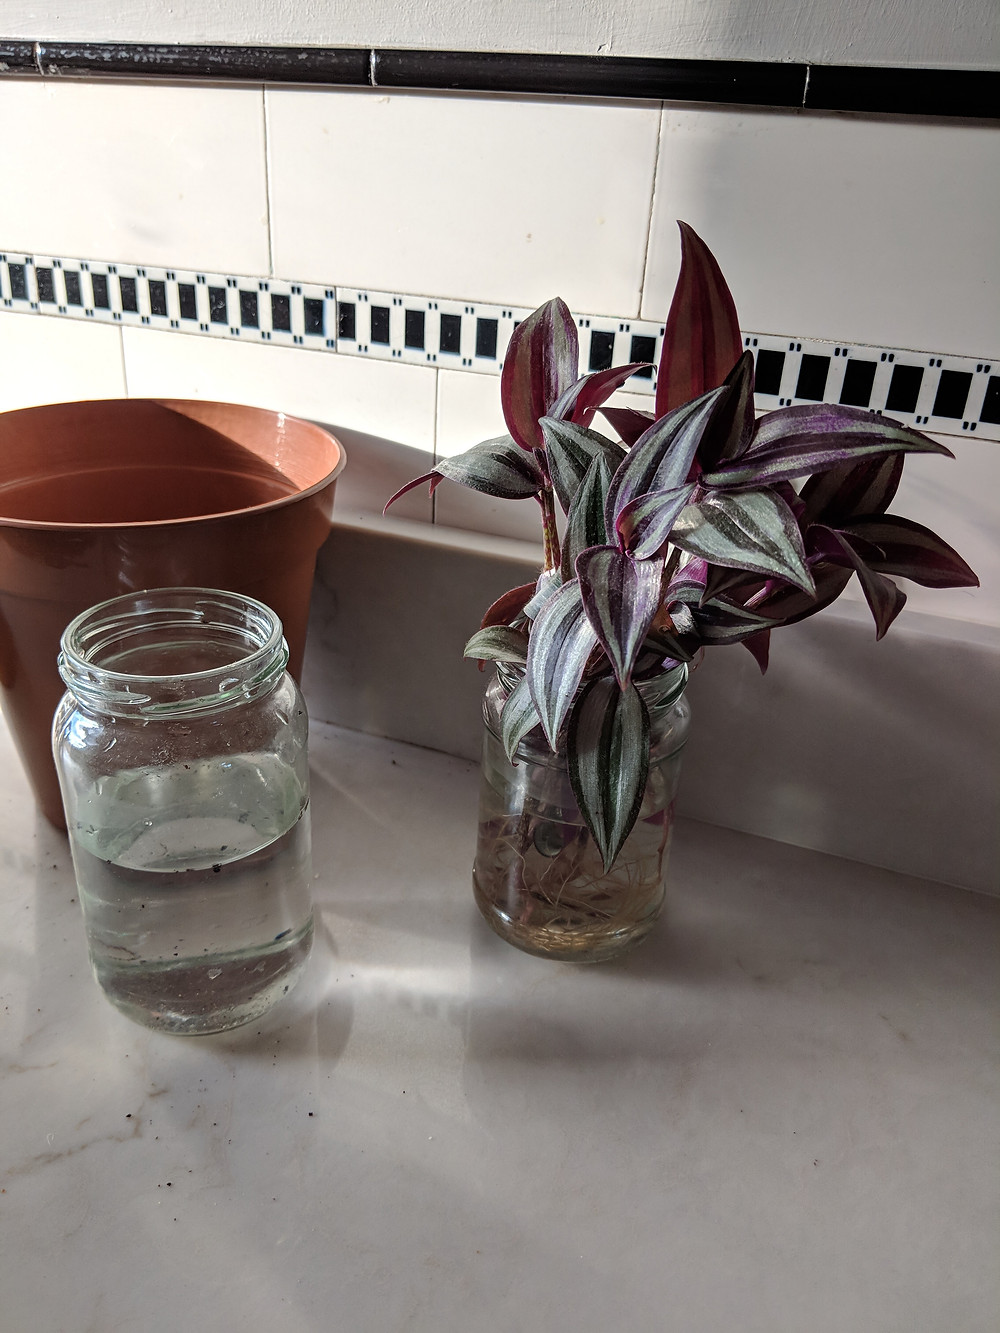 On a kitchen counter, a jar of plant cuttings sits next to an empty plant pot and a jar of water.